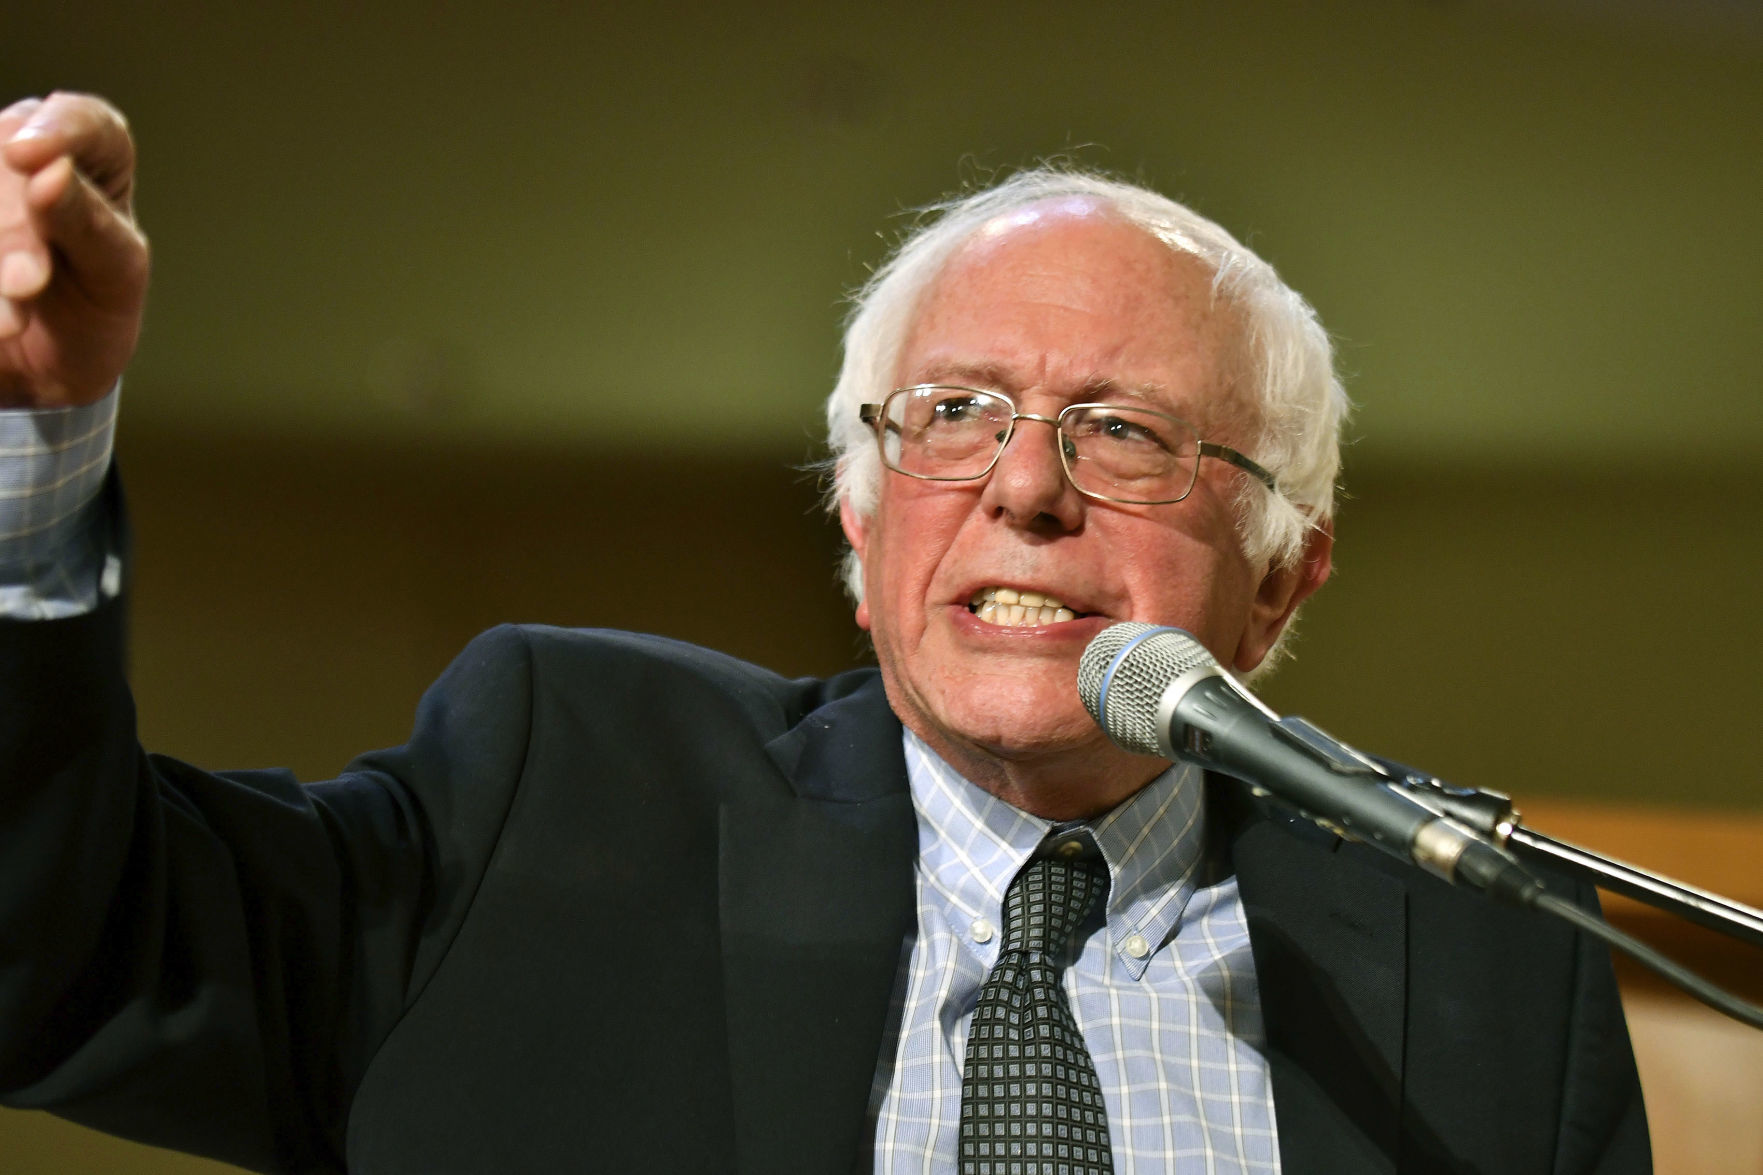 Bernie Sanders is coming to Tucson next week to campaign for David Garcia | Tucson.com